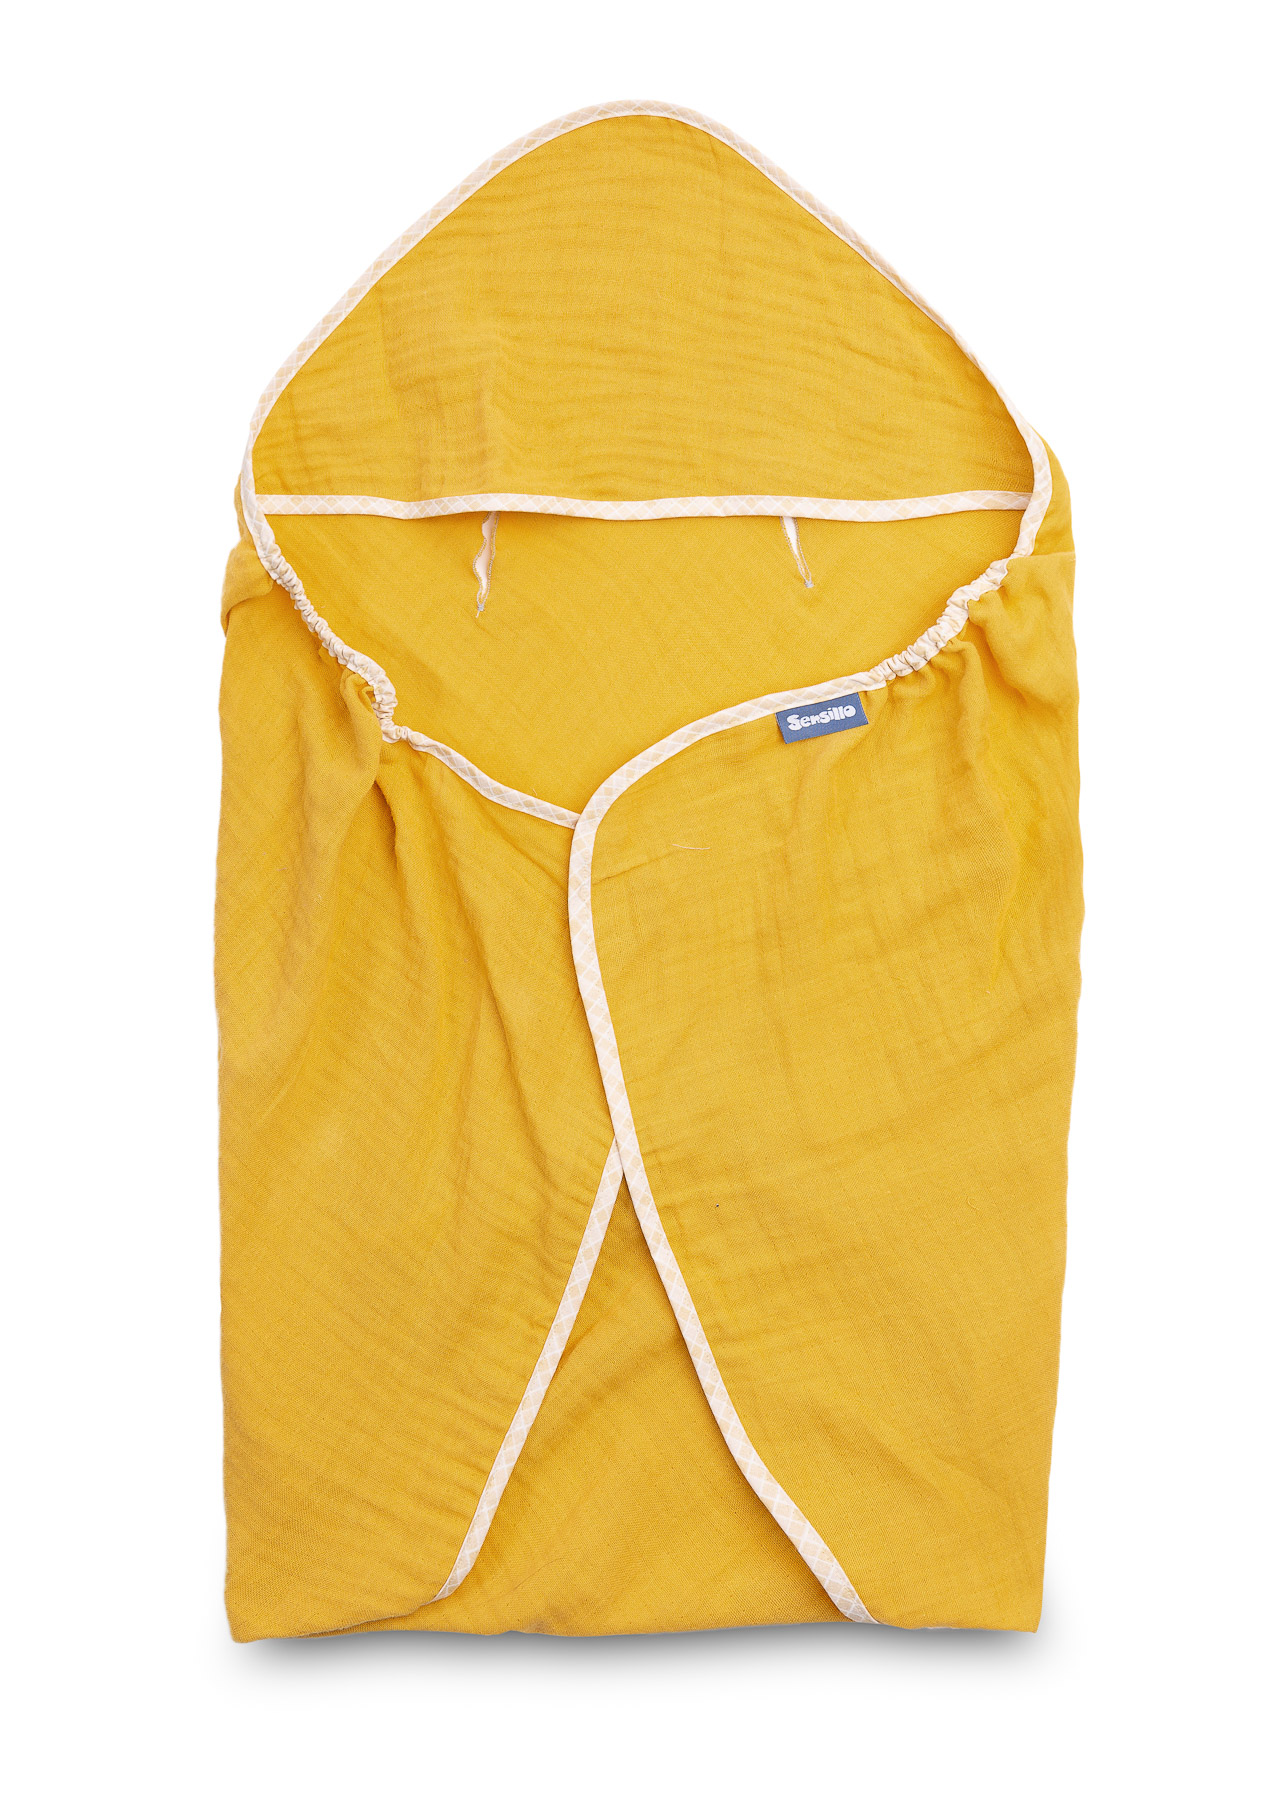 Child seat muslin swaddle blanket for summer – mustard